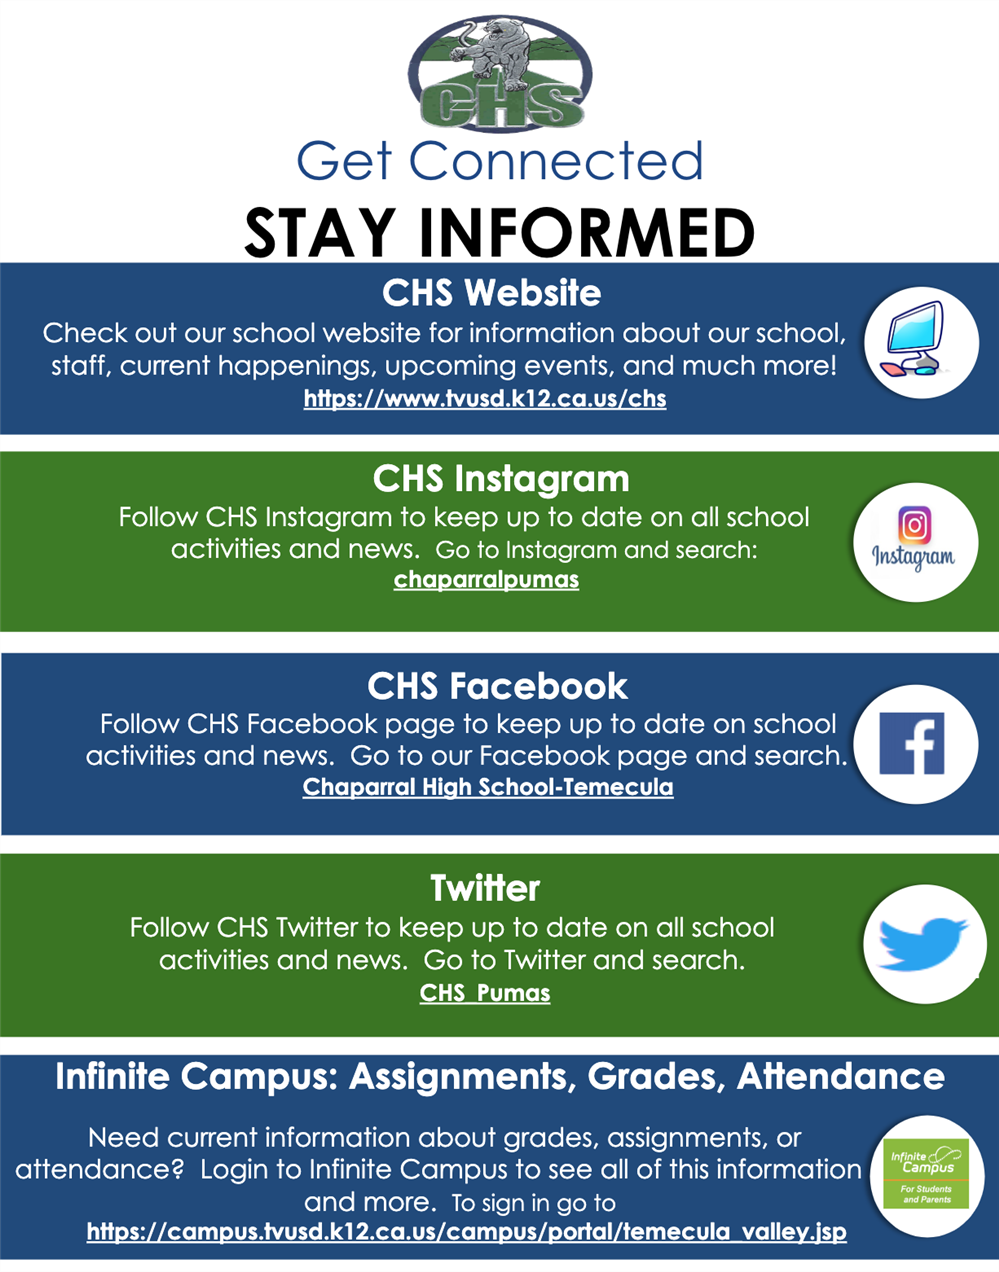 CHS Get Connected